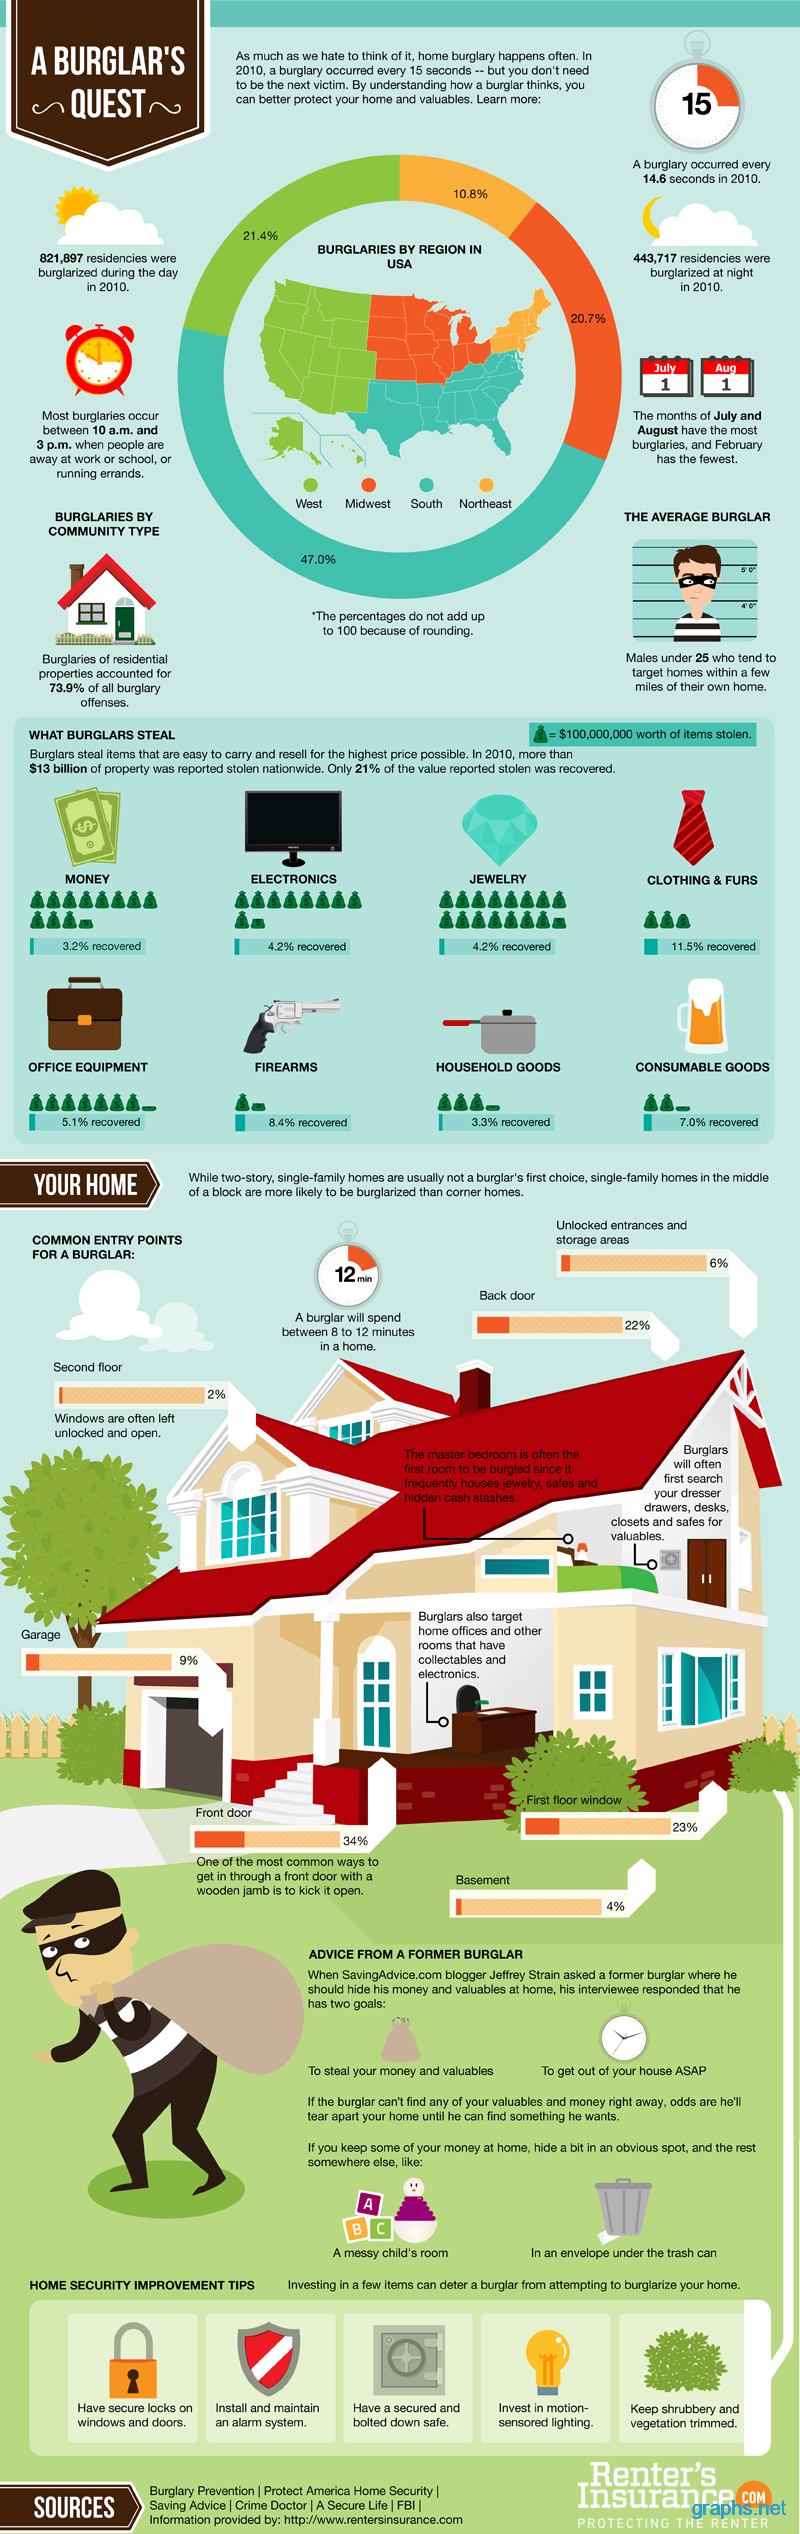 facts about burglars